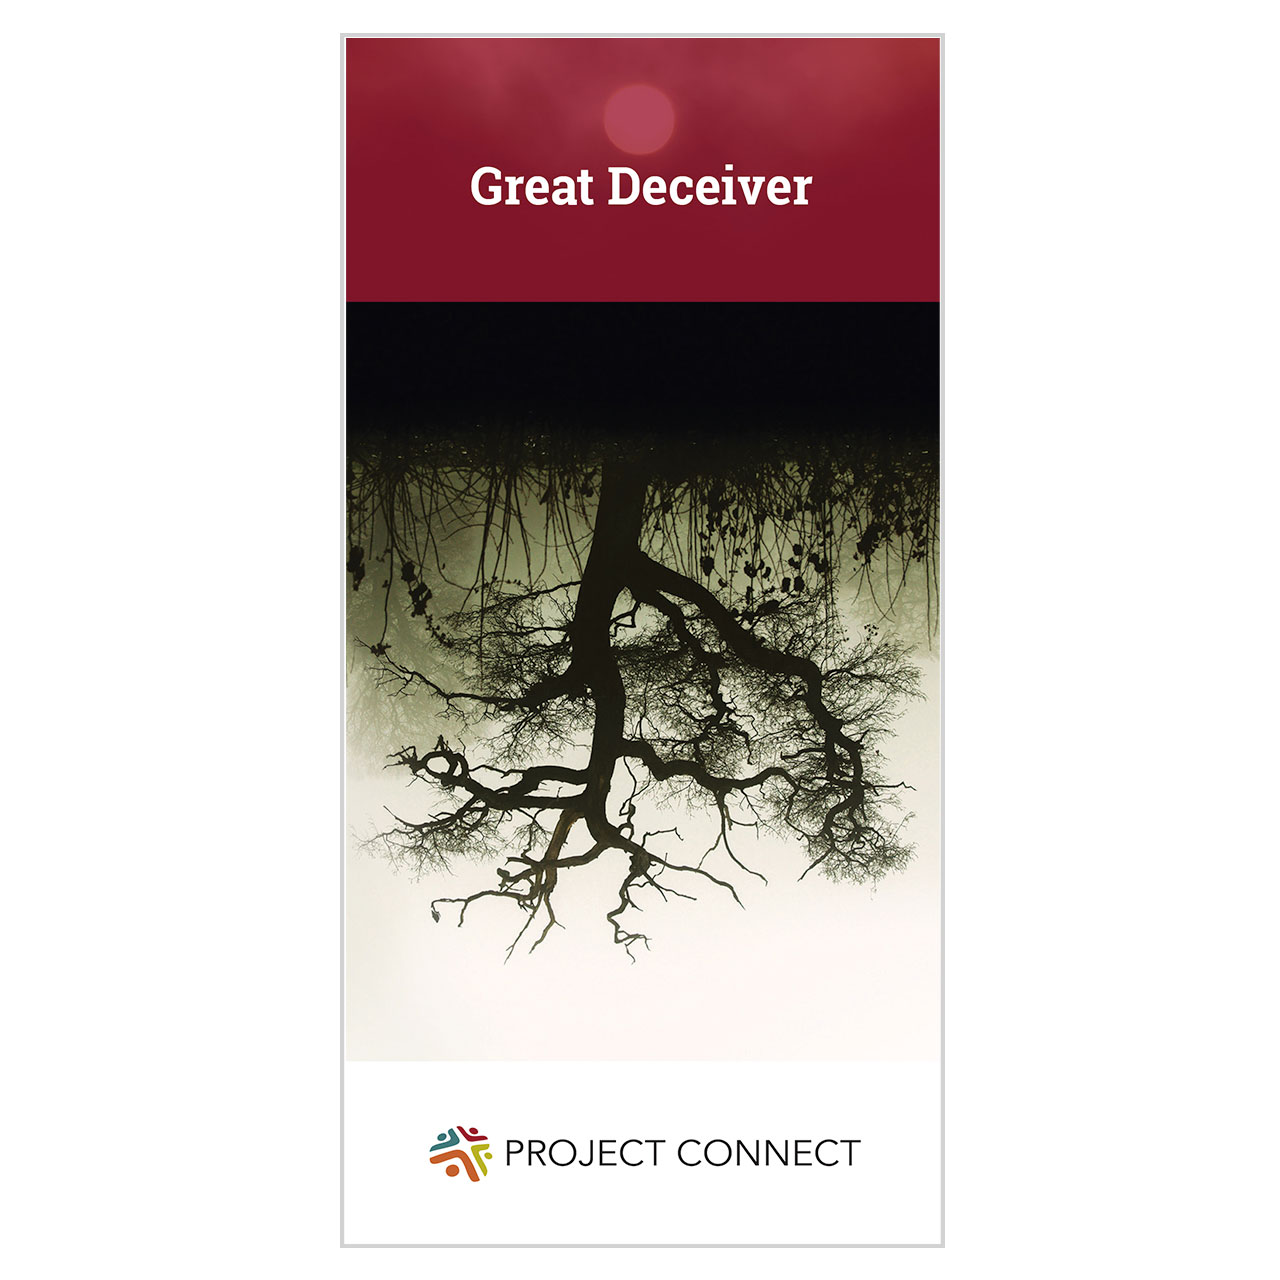 Great Deceiver